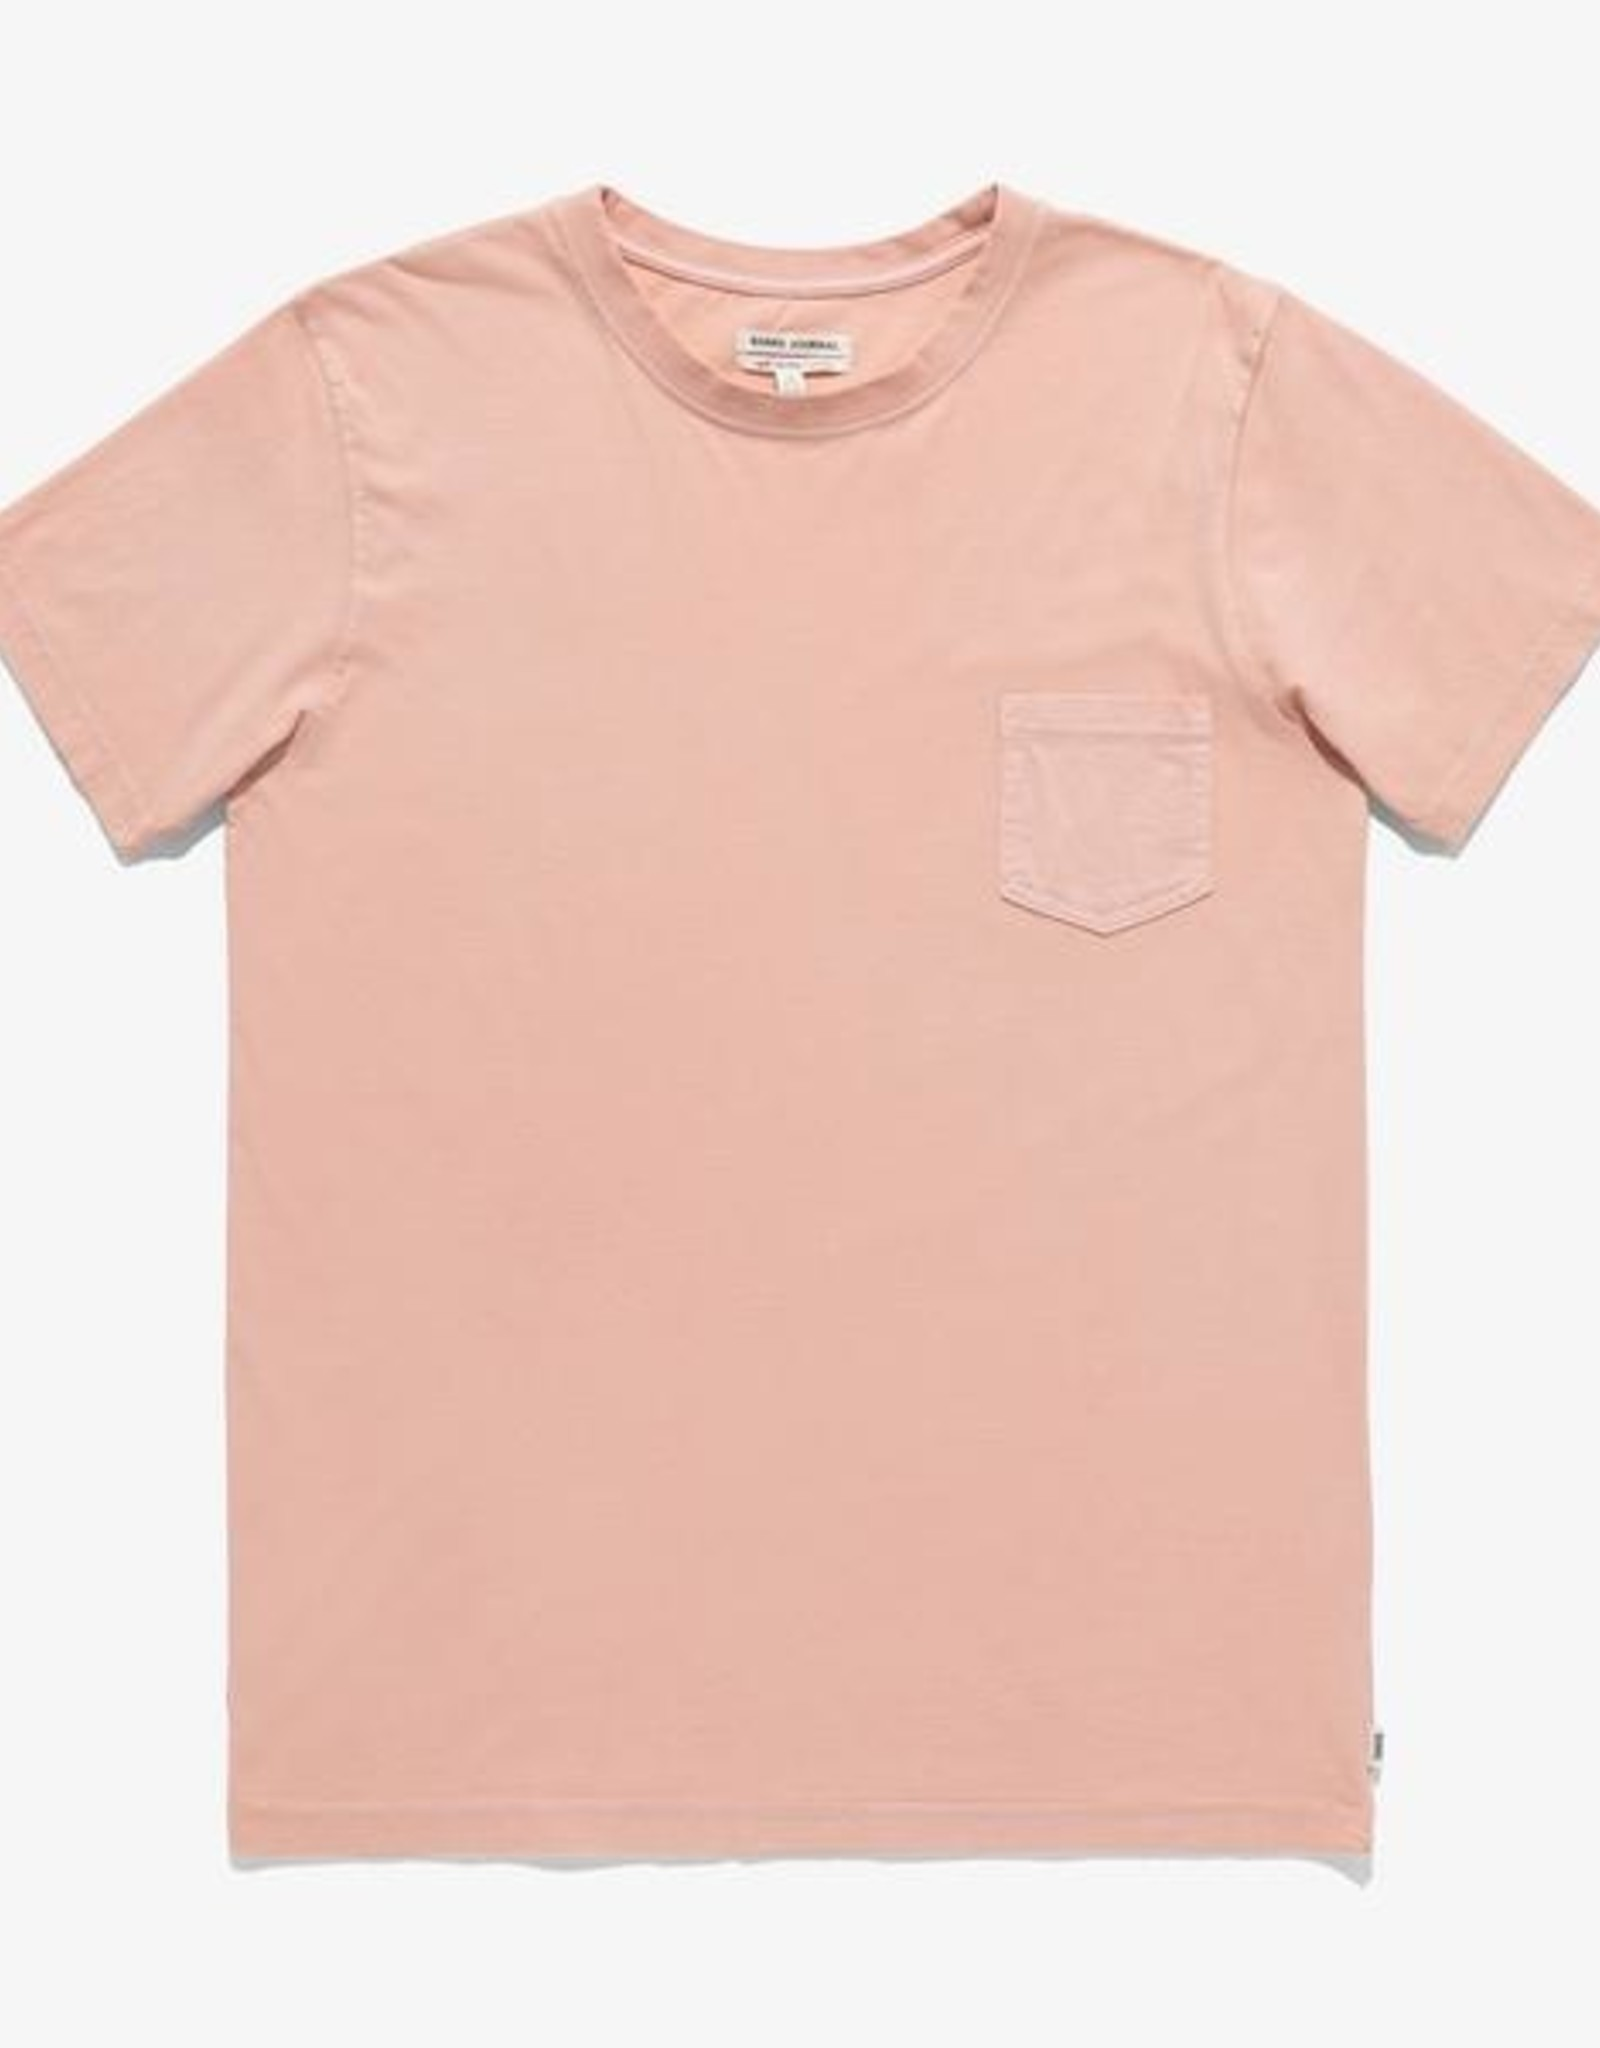 BANKS JOURNAL BANKS JOURNAL PRIMARY CLASSIC TEE - PINK IVORY